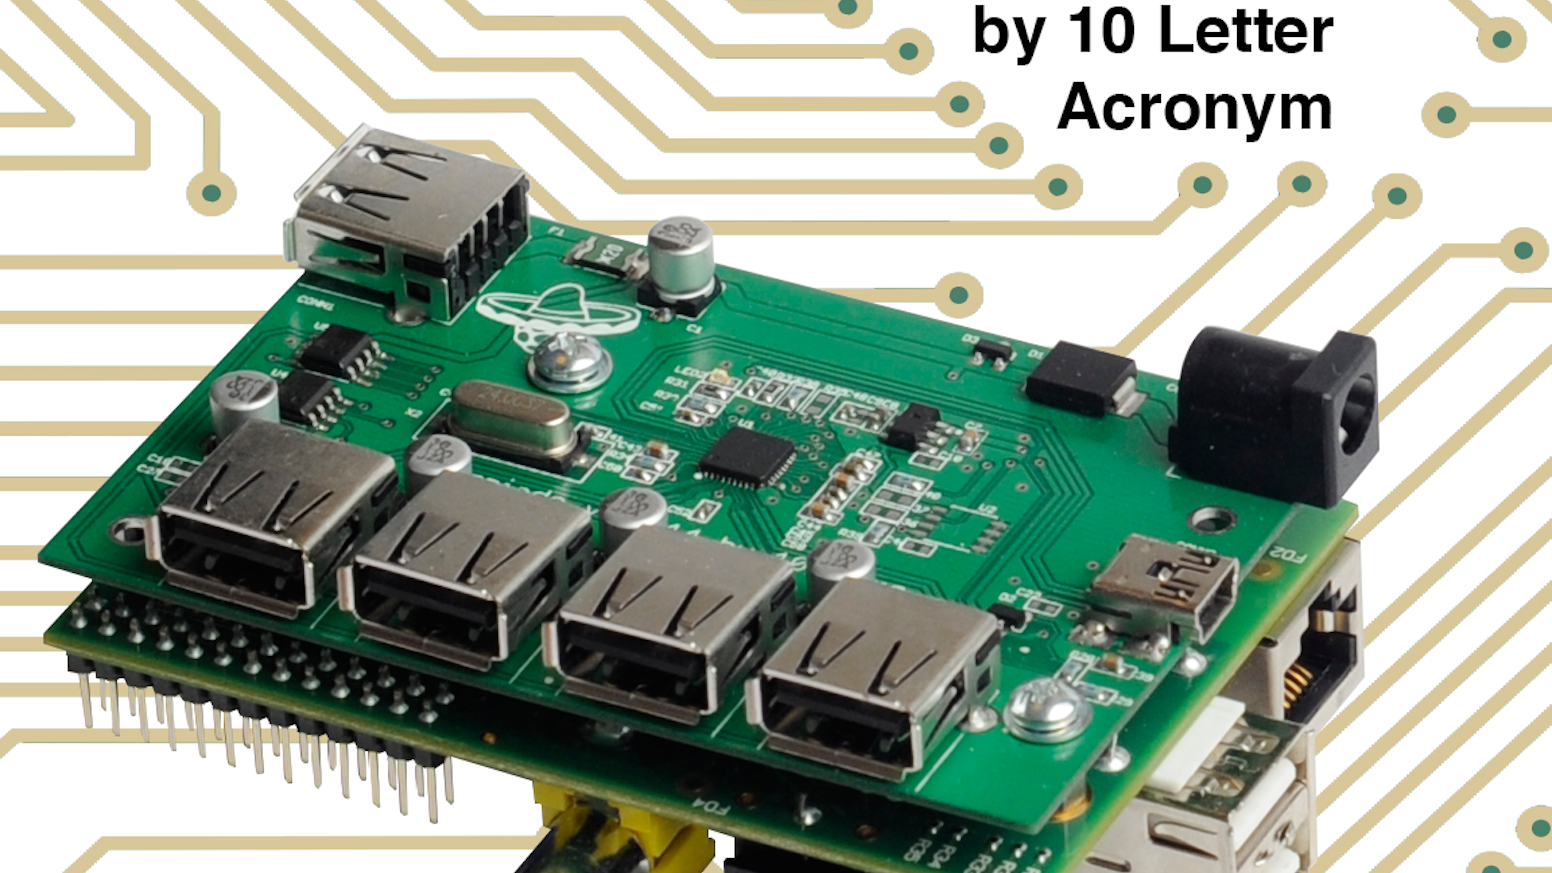 Power your Raspberry Pi, add USB ports, and look great doing it. A